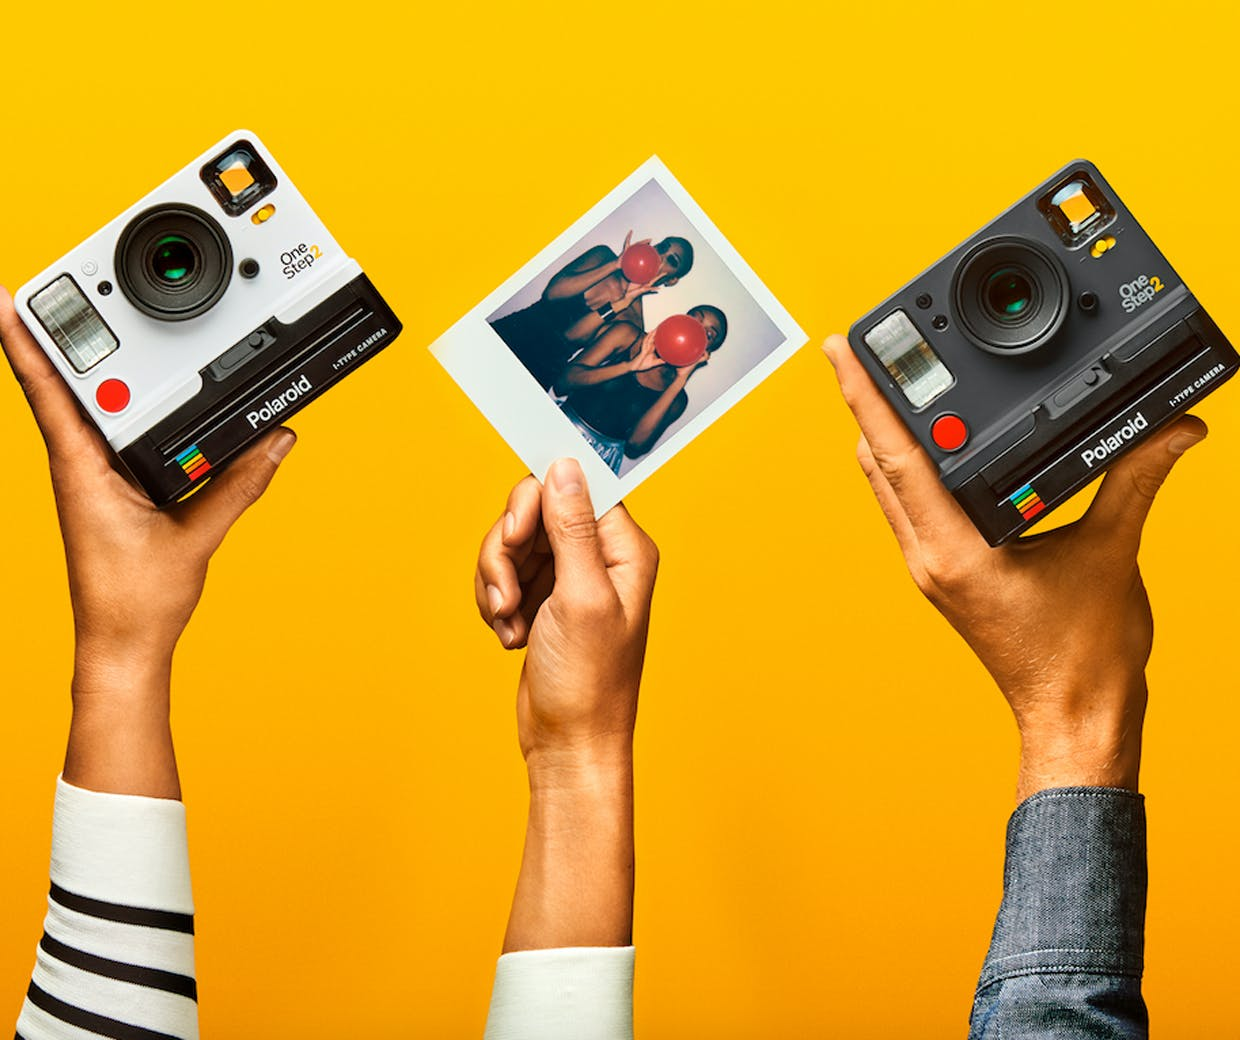 Polaroid On Why The Stranger Things Effect Is Good News For Retro Brands